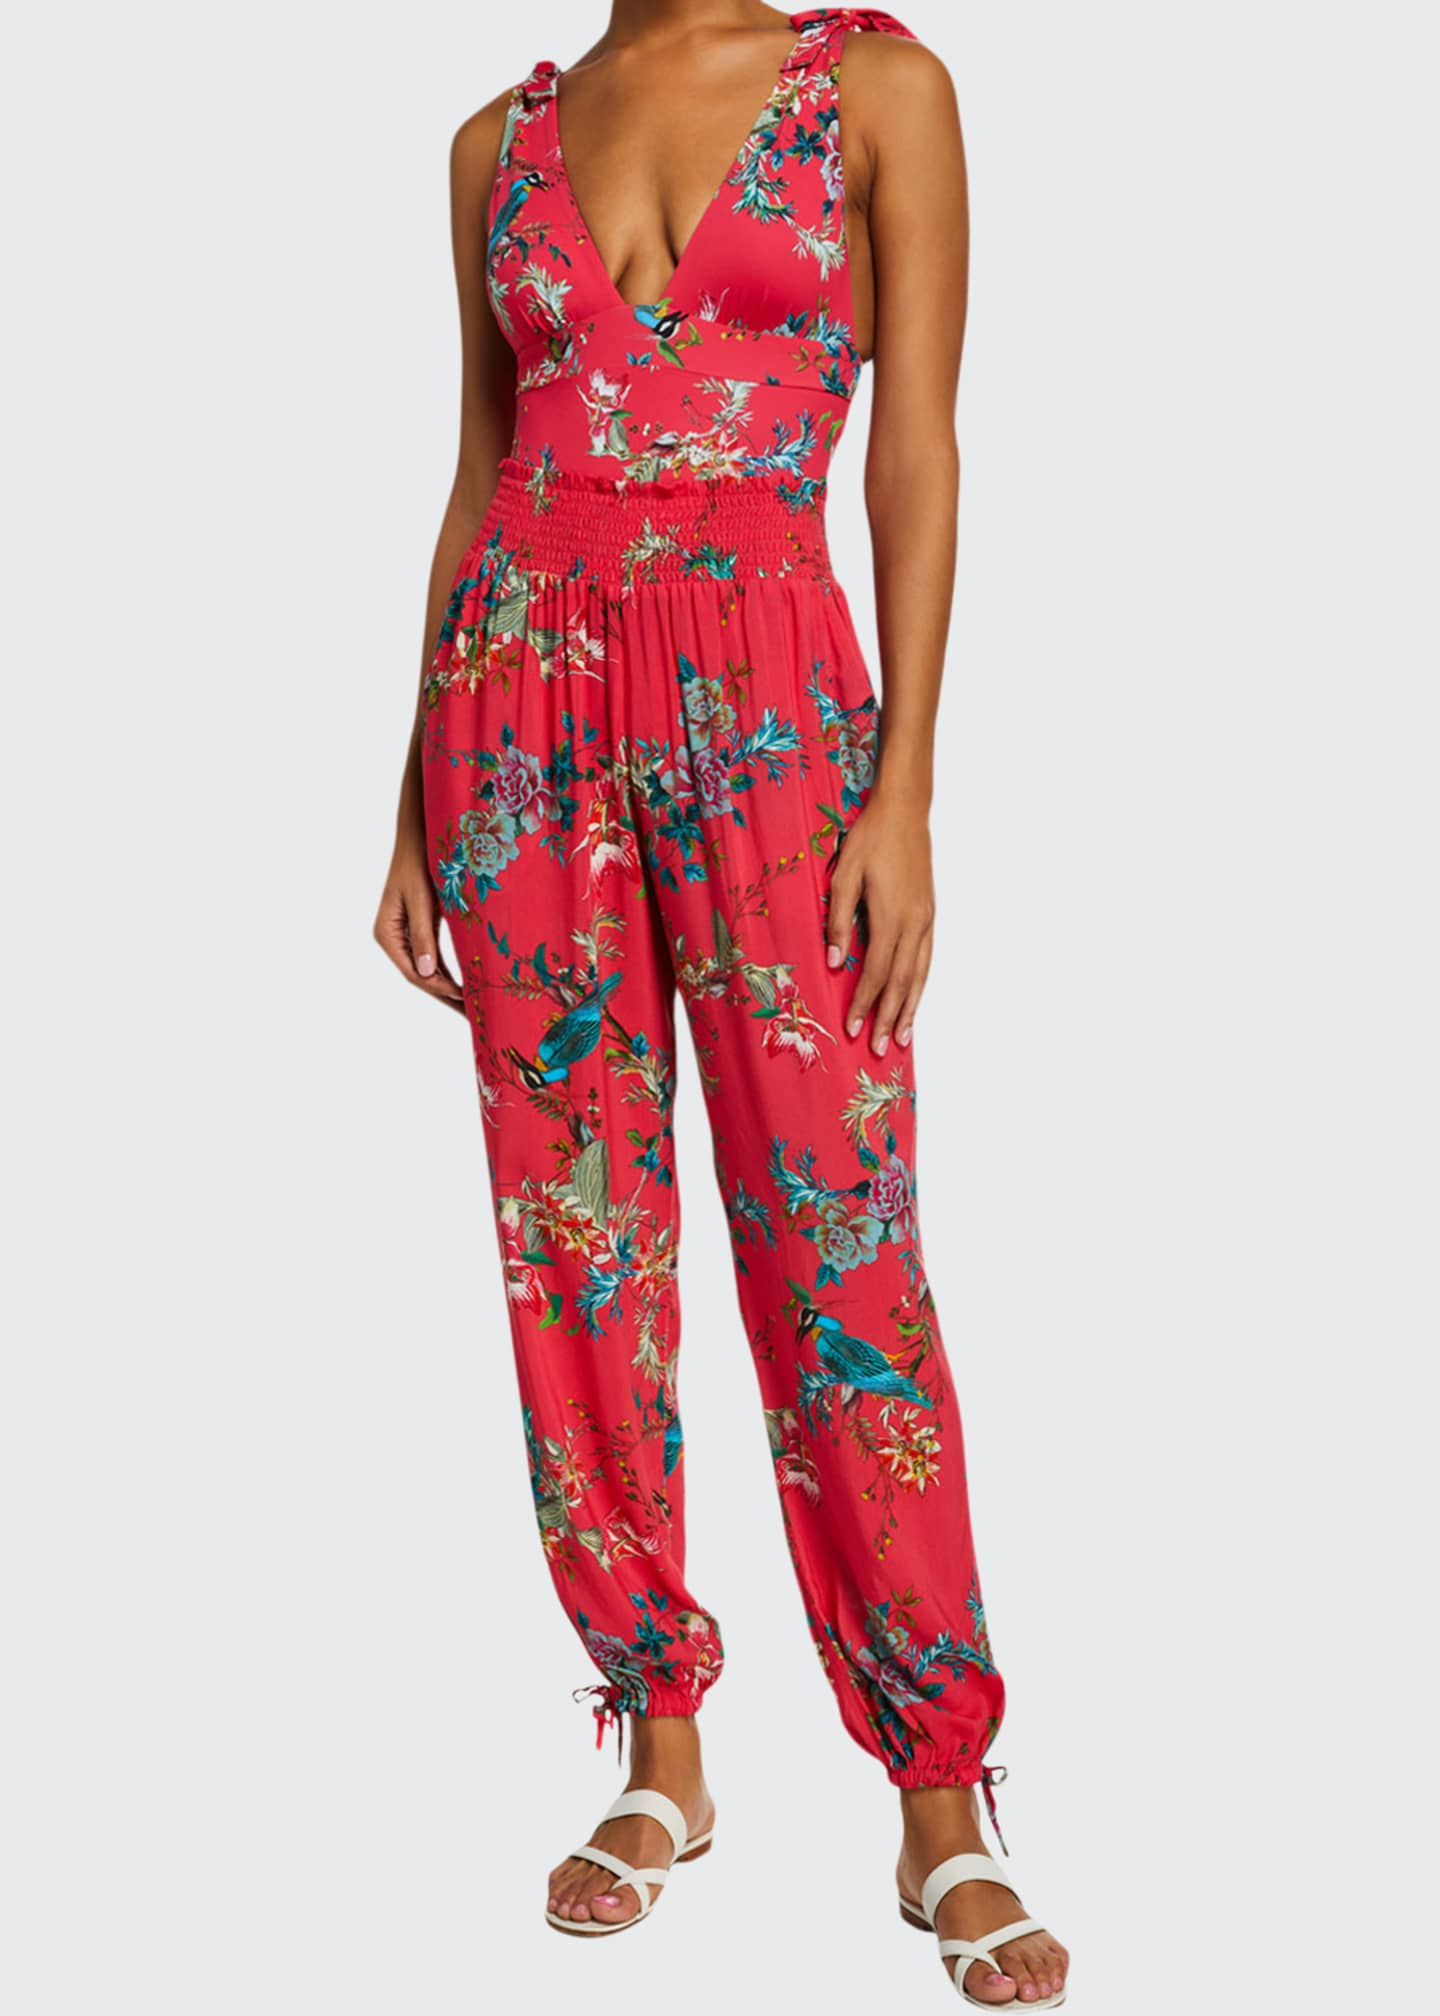 Johnny Was Malakye Smocked Floral Coverup Joggers